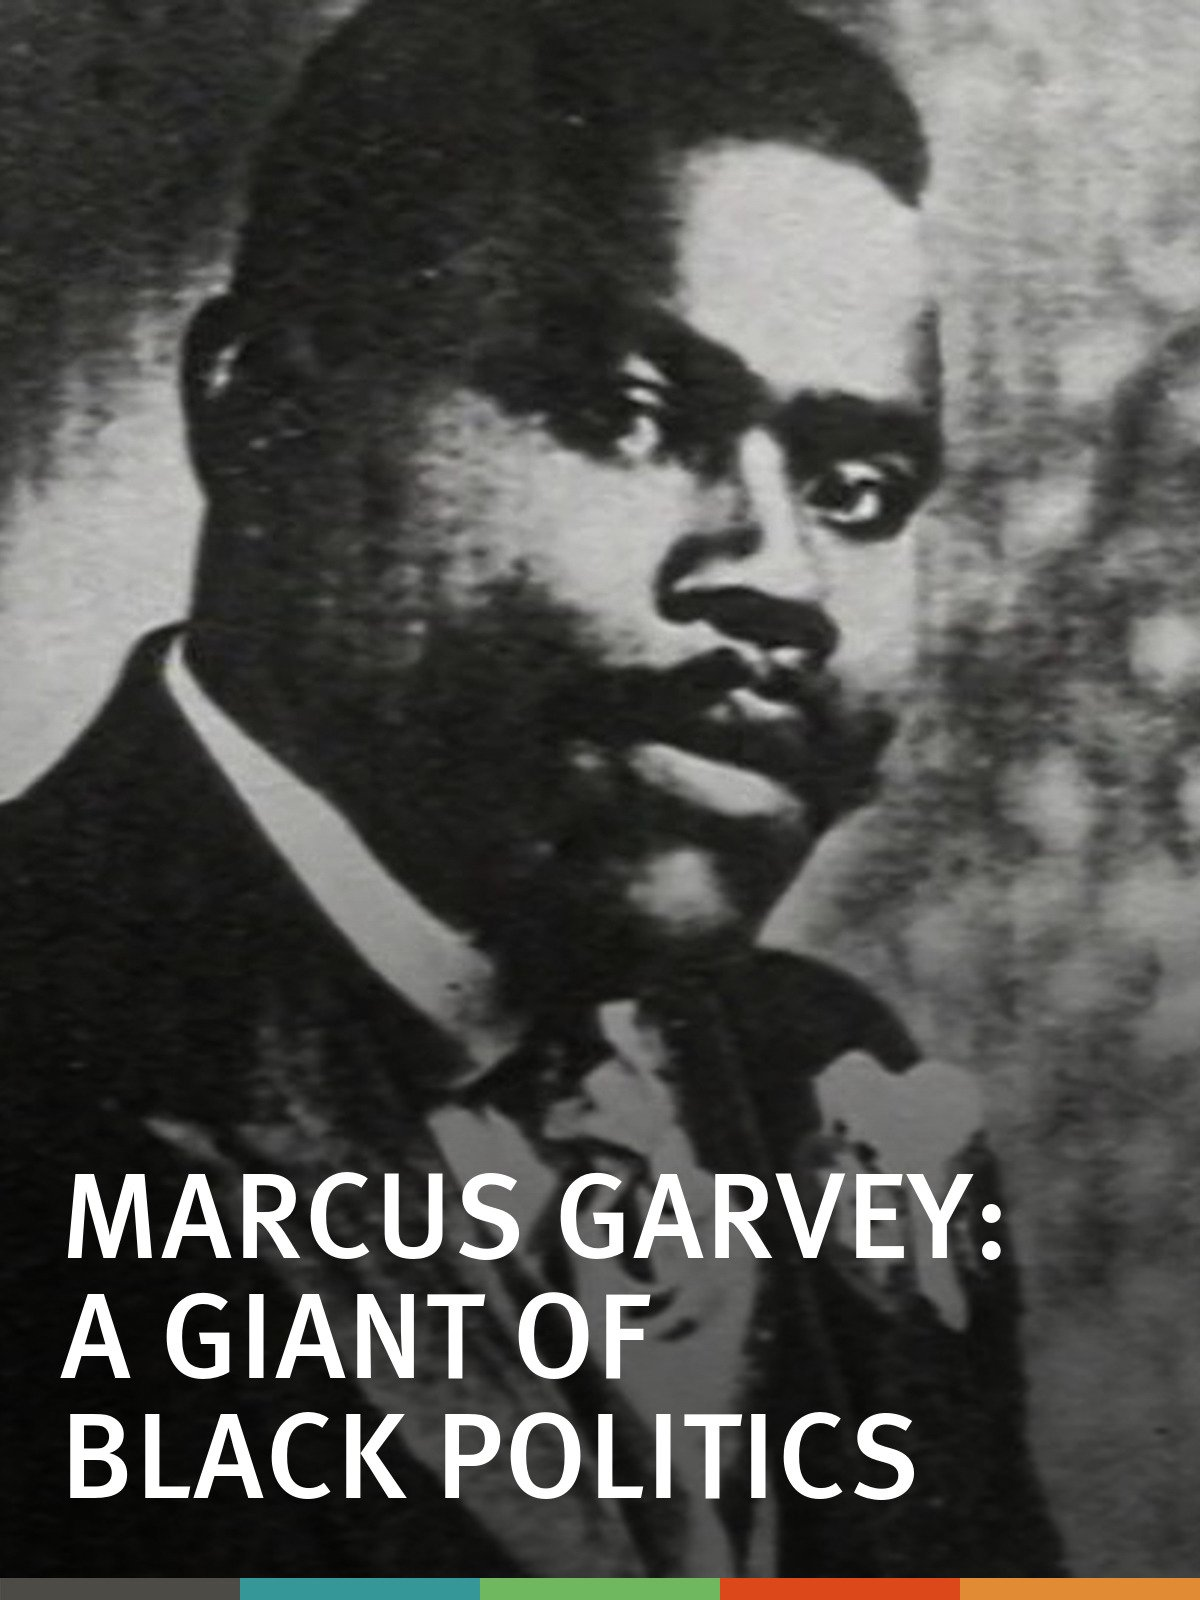 Amazon.com: Watch Marcus Garvey: A Giant of Black Politics | Prime ...